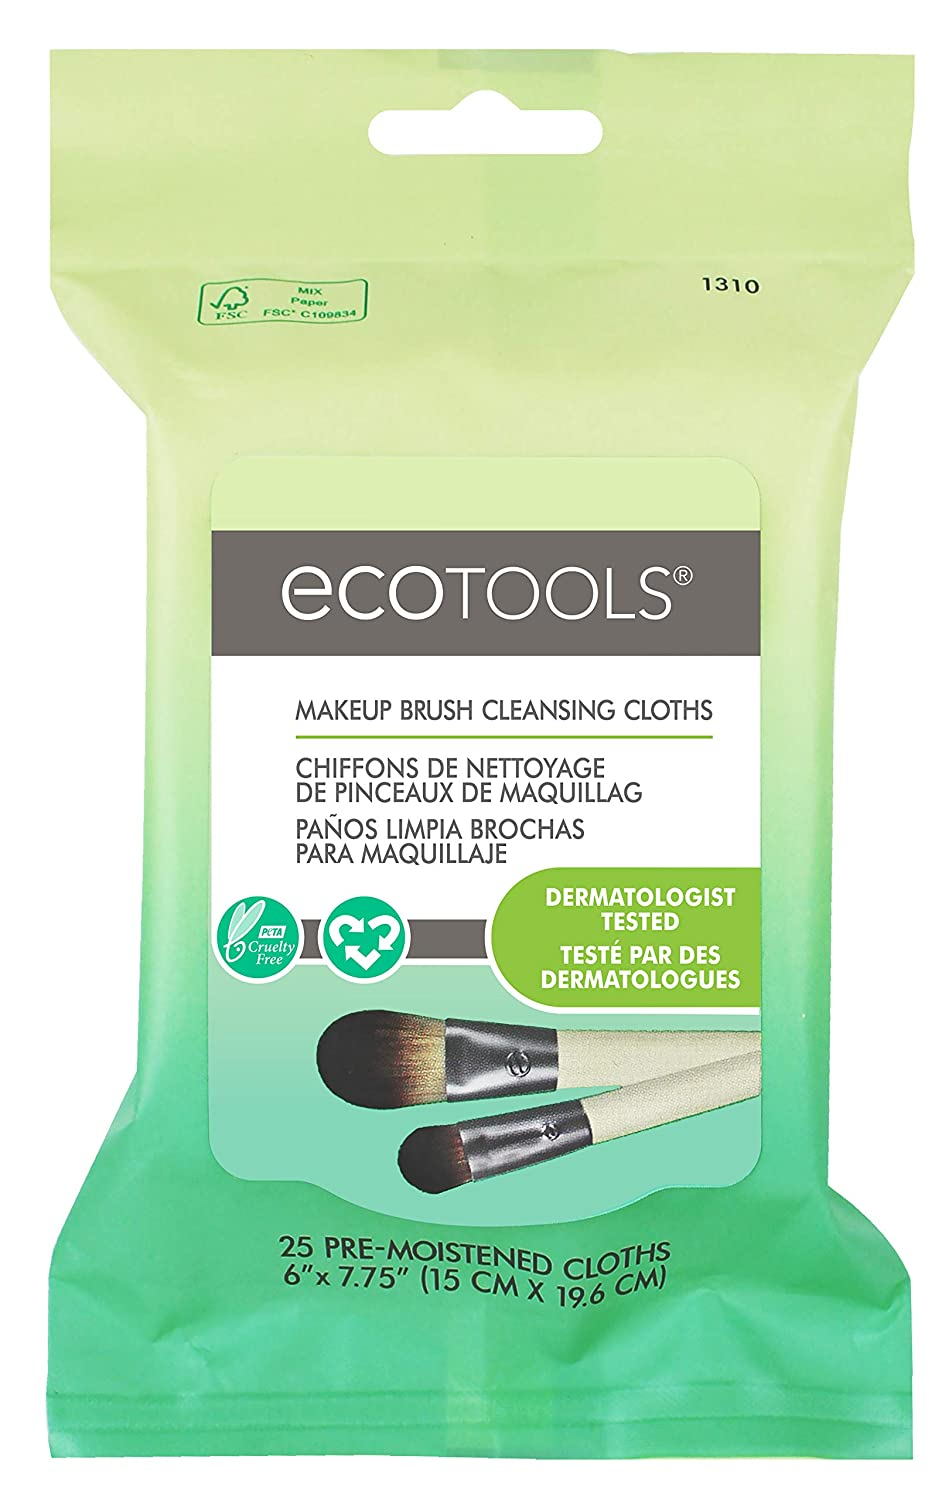 Ecotools Cruelty Free and Eco Friendly Makeup Brush Cleansing Cloths, 0.46 Ounce; Wash Away Surface Makeup, Oil, and Impurities from Brushes Improving Brush Performance Paris Presents Incorporated 1310